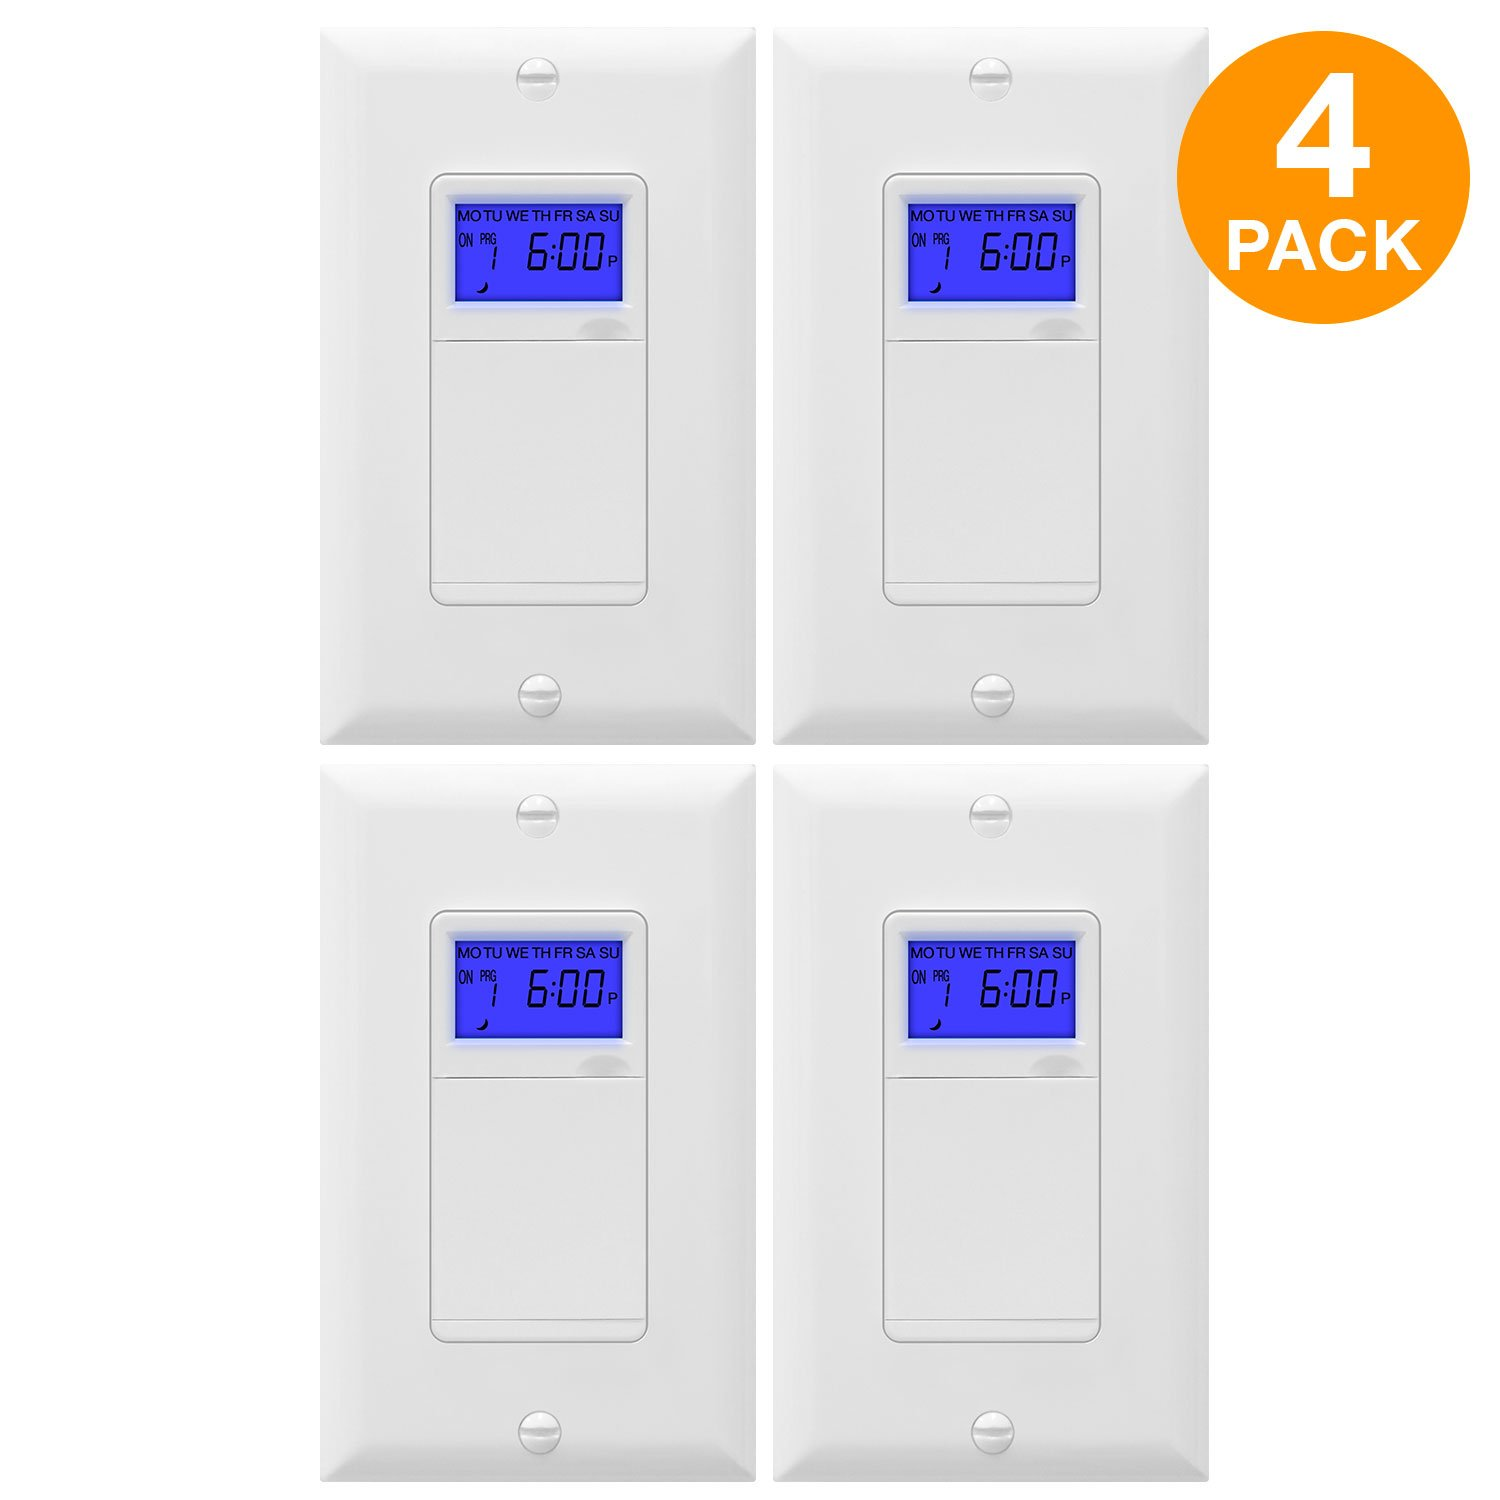 TOPGREENER TGT01-H-4PCS Astronomic Timer Switch, 7-Day Programmable Timer Switch with Interchangeable Face Cover, Dusk to Dawn, Sunrise Sunset Timer, Neutral Wire Required, 4-Pack